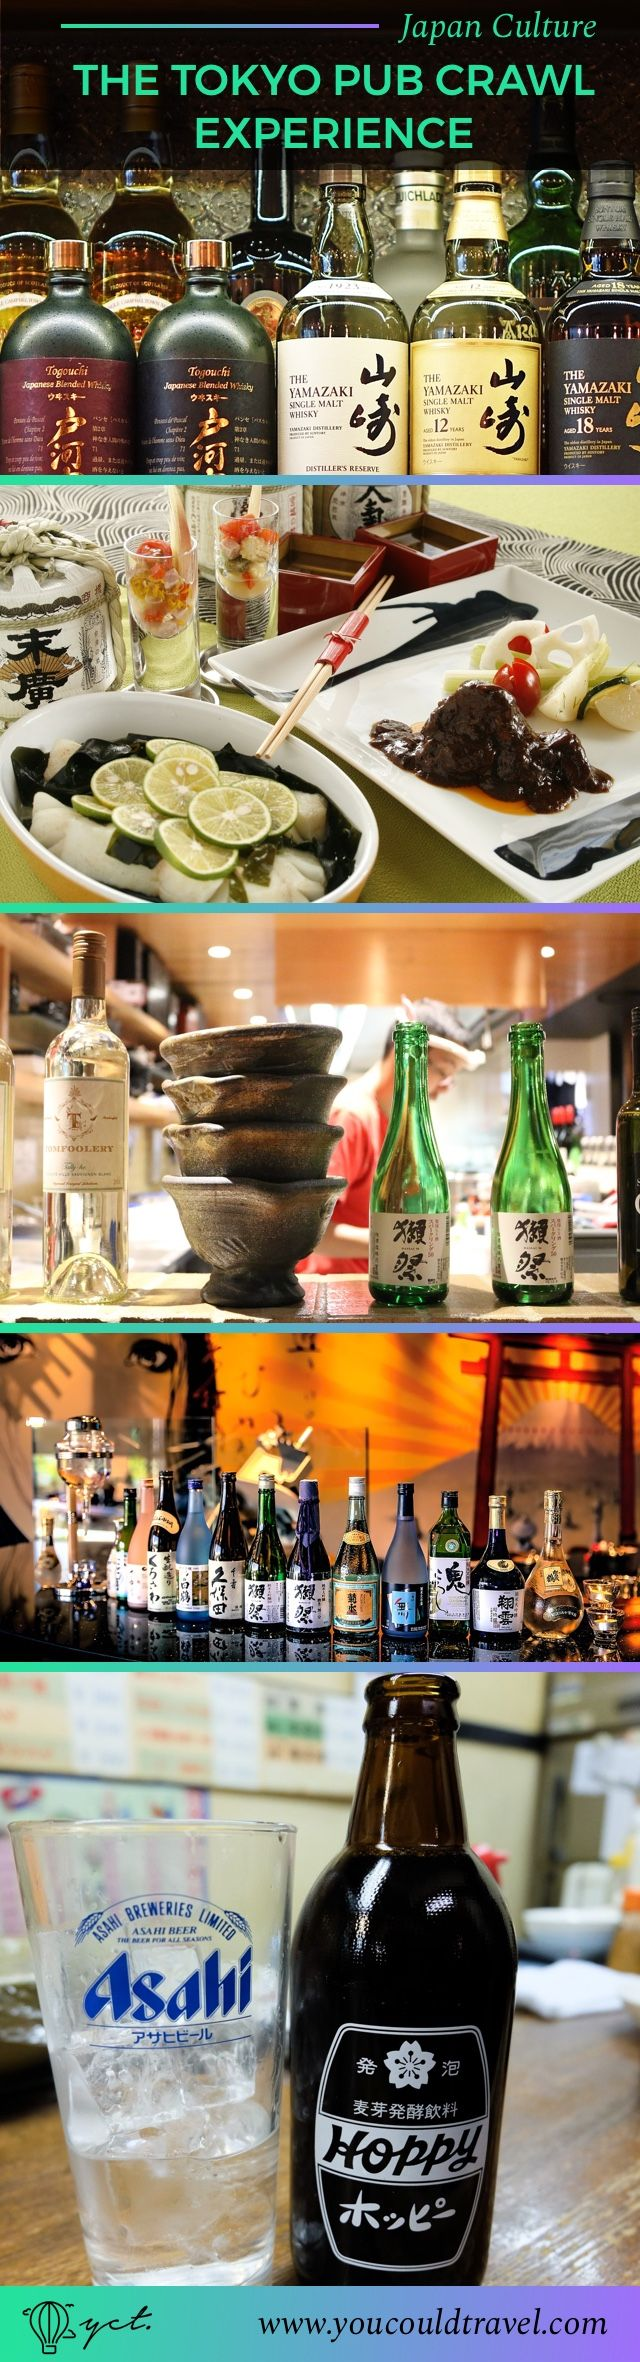 Our Tokyo Pub Crawl turned out to be a lot of fun. We got to try lots of Japanese drinks such as sake, Hoppy and a double pint of whisky soda. We were taken to lots of Izakayas, all hidden Japanese bars. Ready to have an alcoholic adventure?